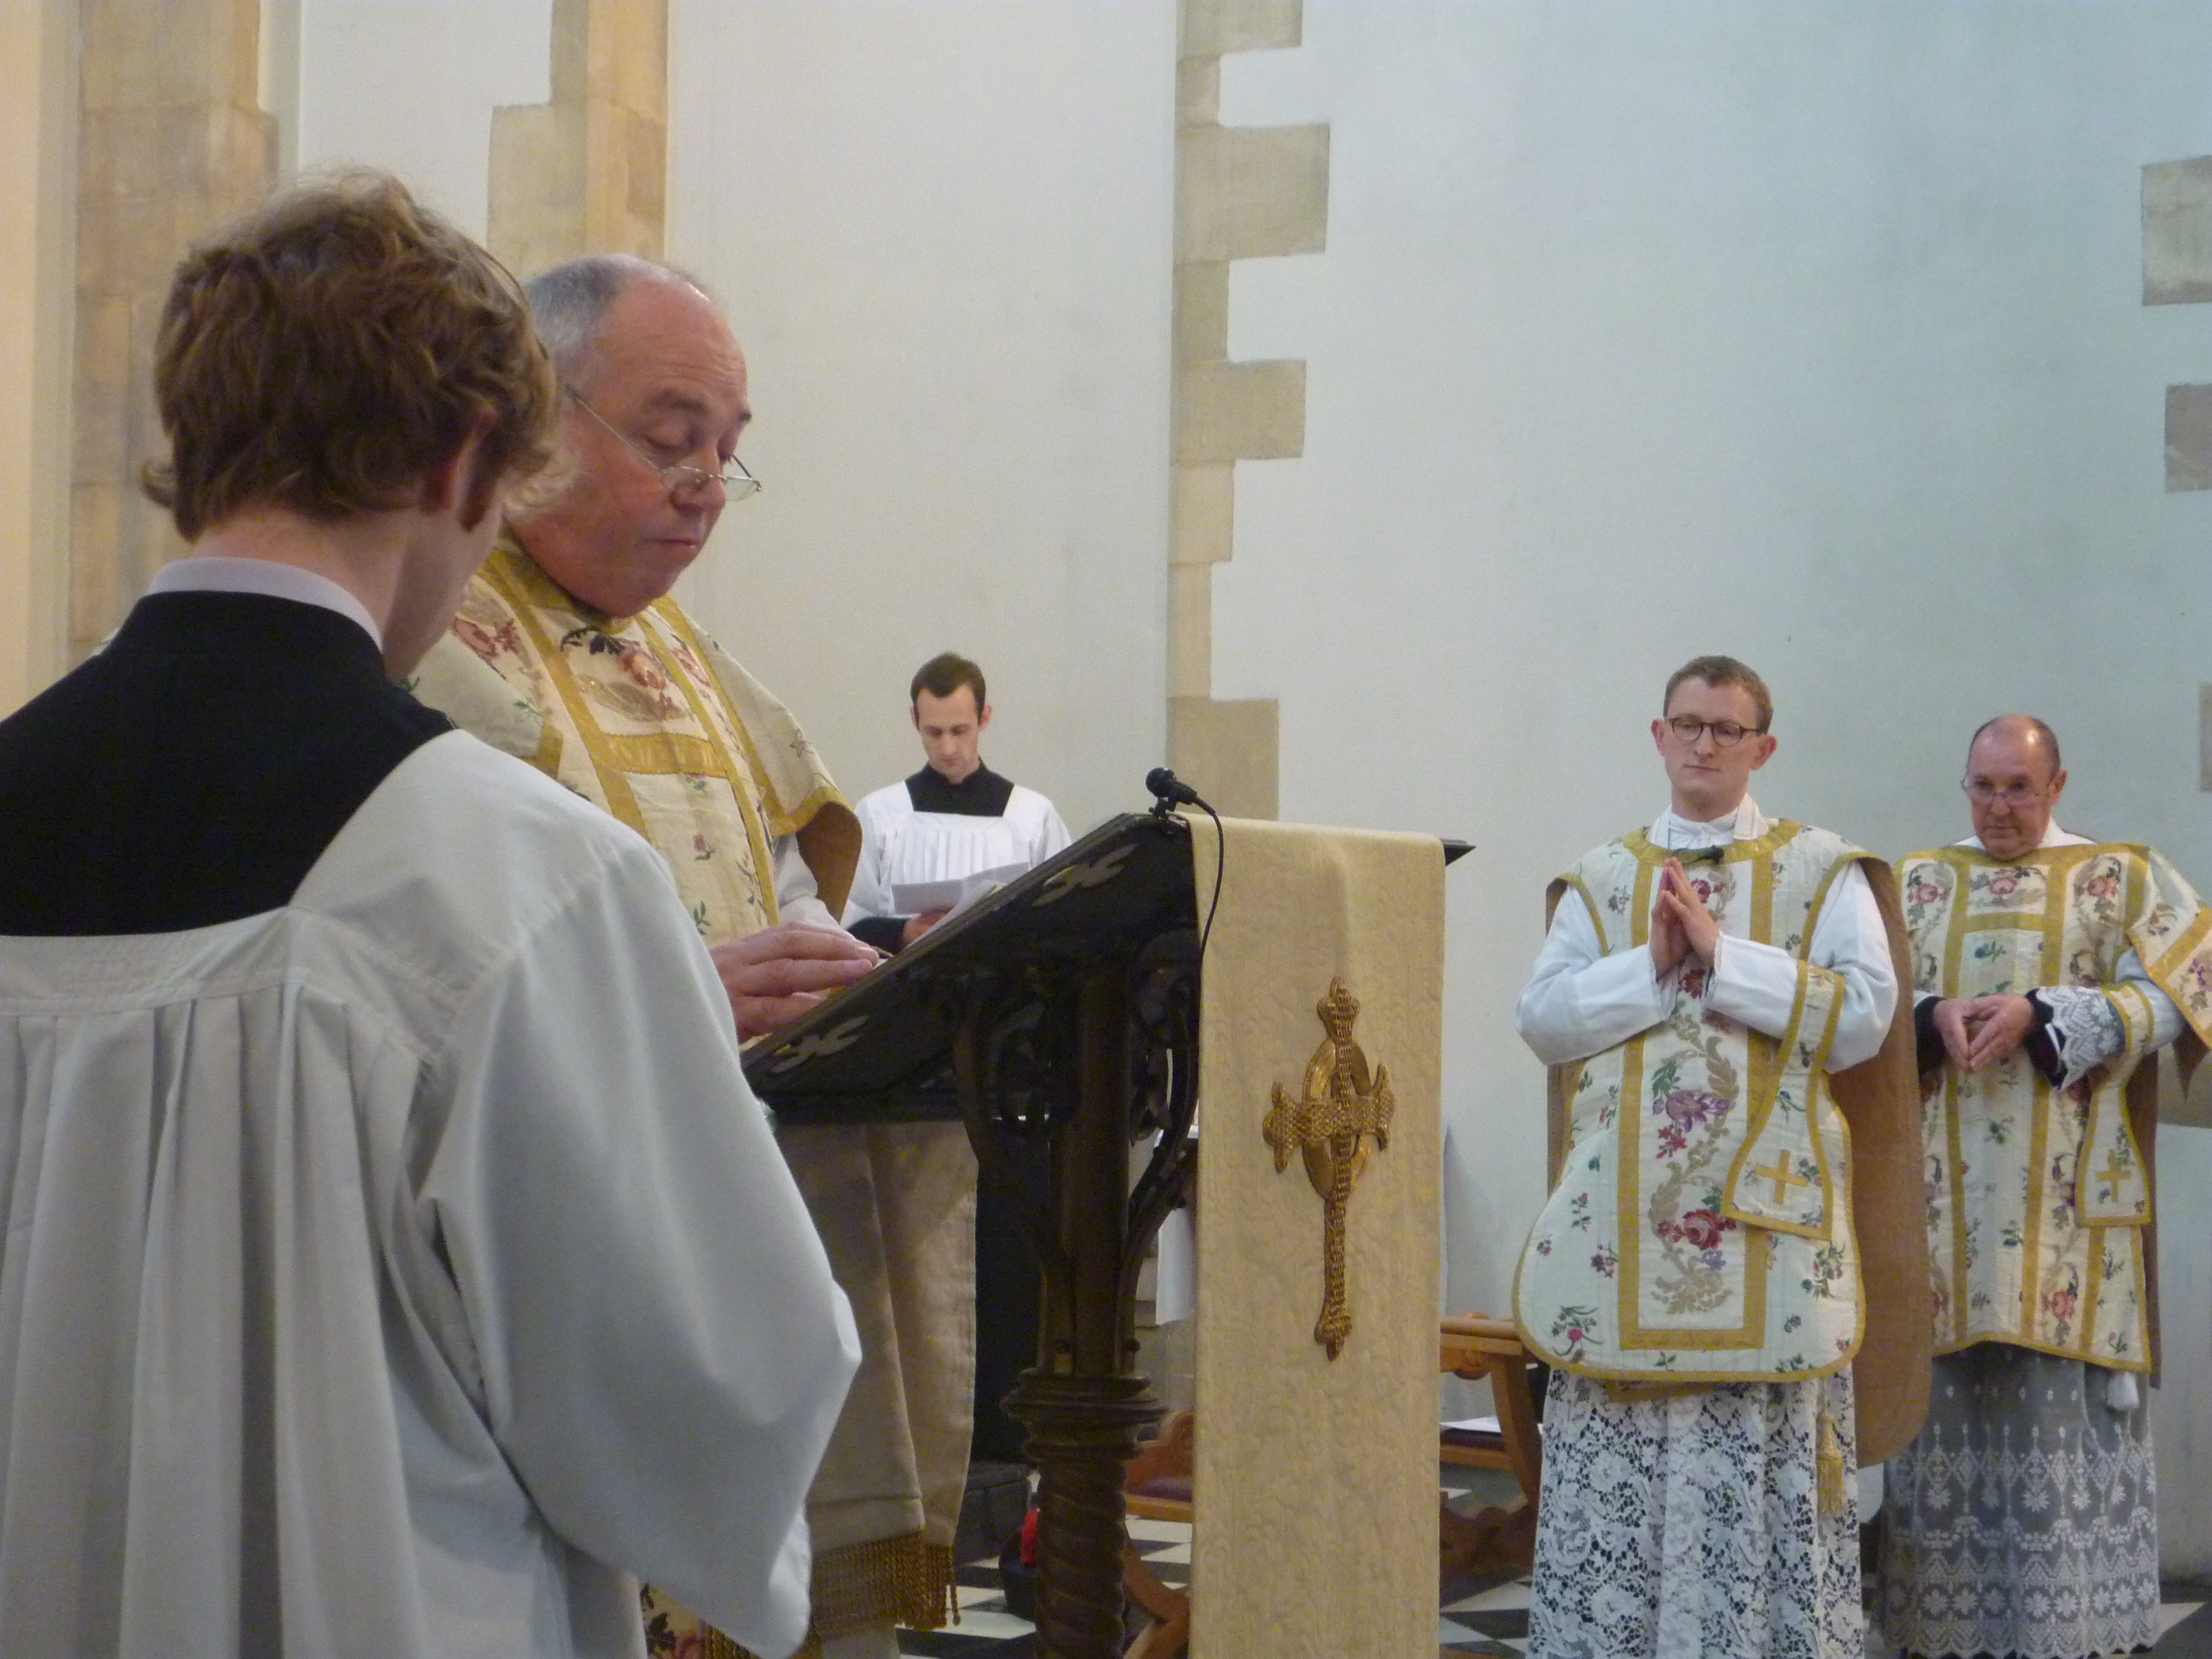 Here are Euan Grant and Nick Archer serving at the liturgy.